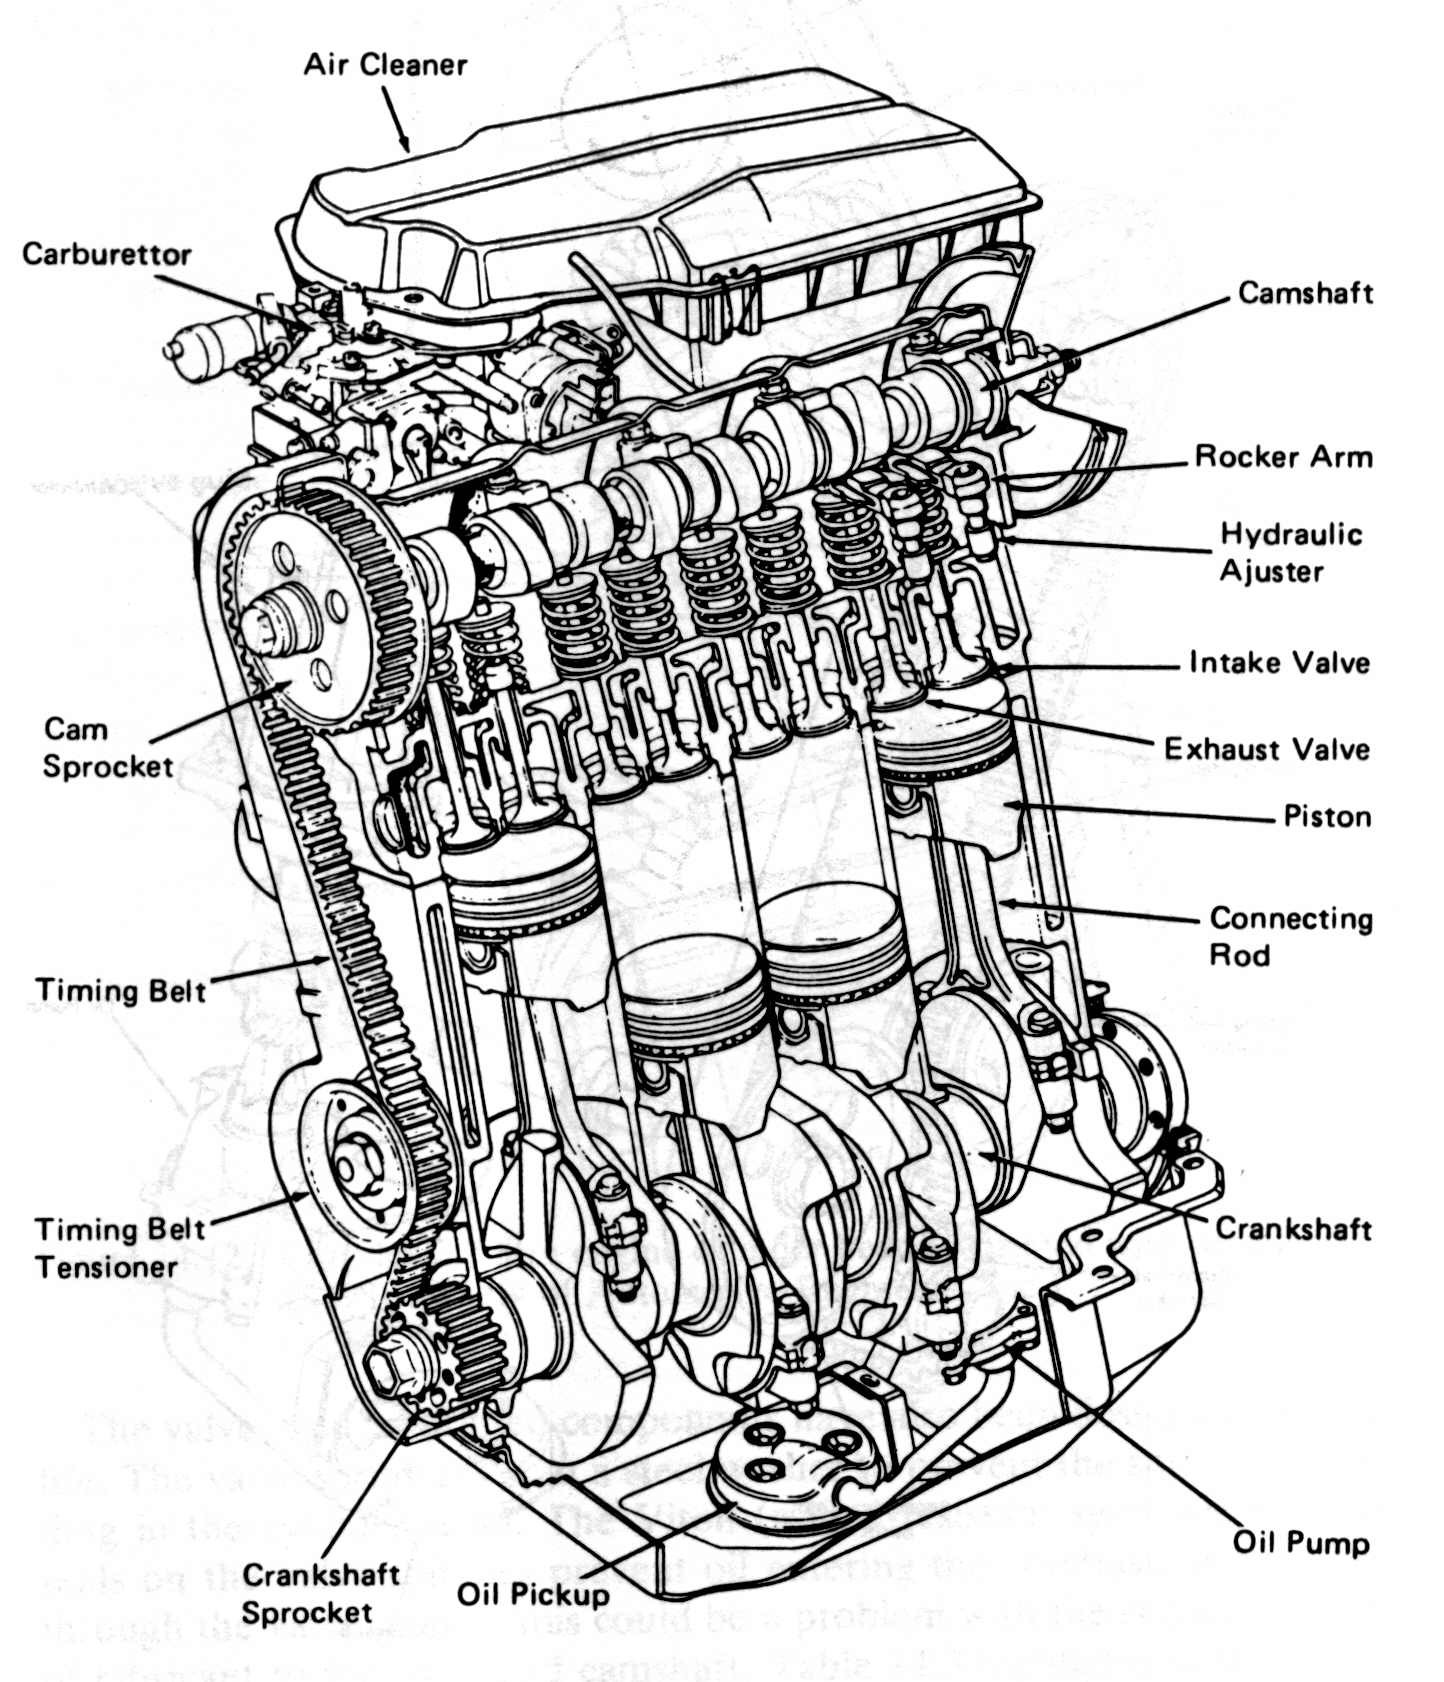 Diesel Engine Diagram Labeled Car Engine Diagram for Dummies Amazing Diesel Engine Diagram Labeled Of Diesel Engine Diagram Labeled